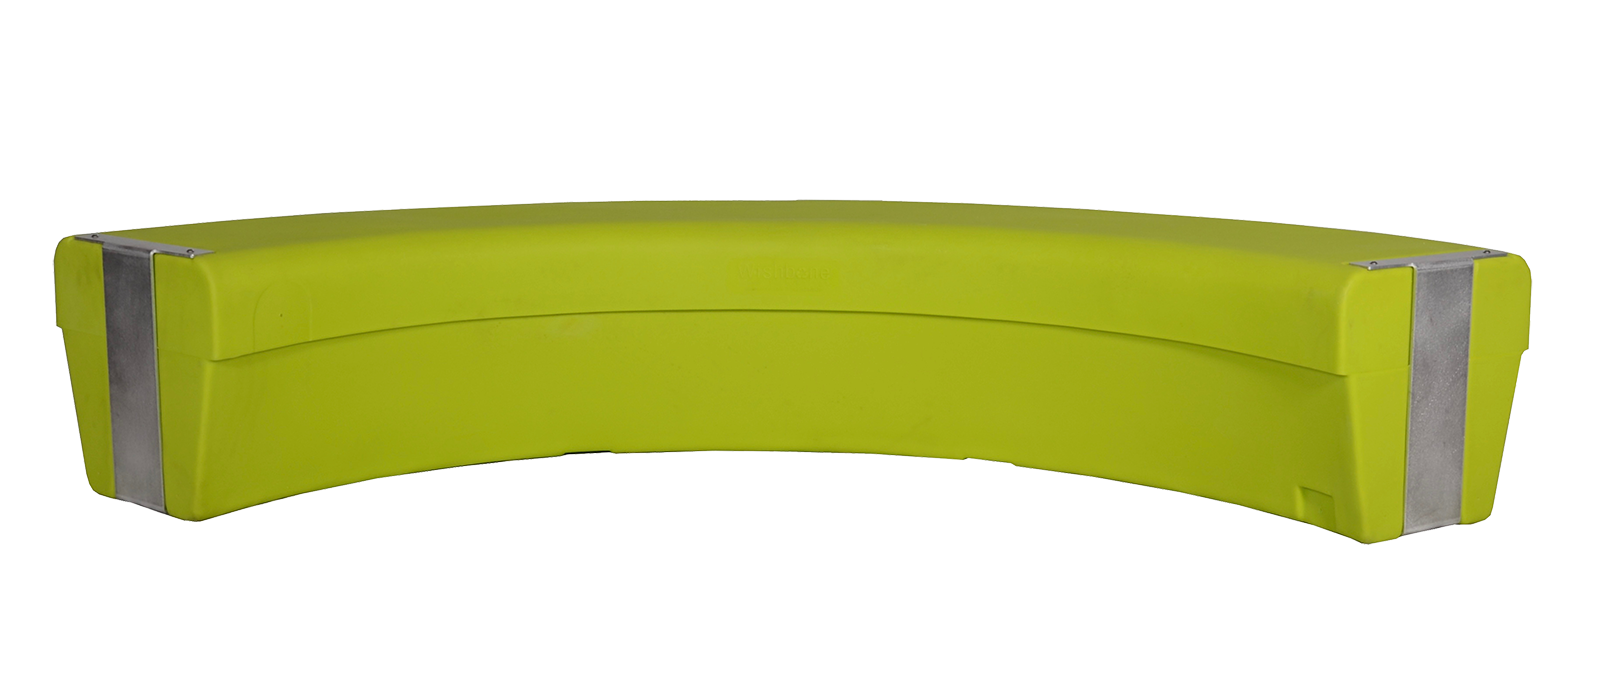 Annison Modular Bench Top View in PNE Green Colour